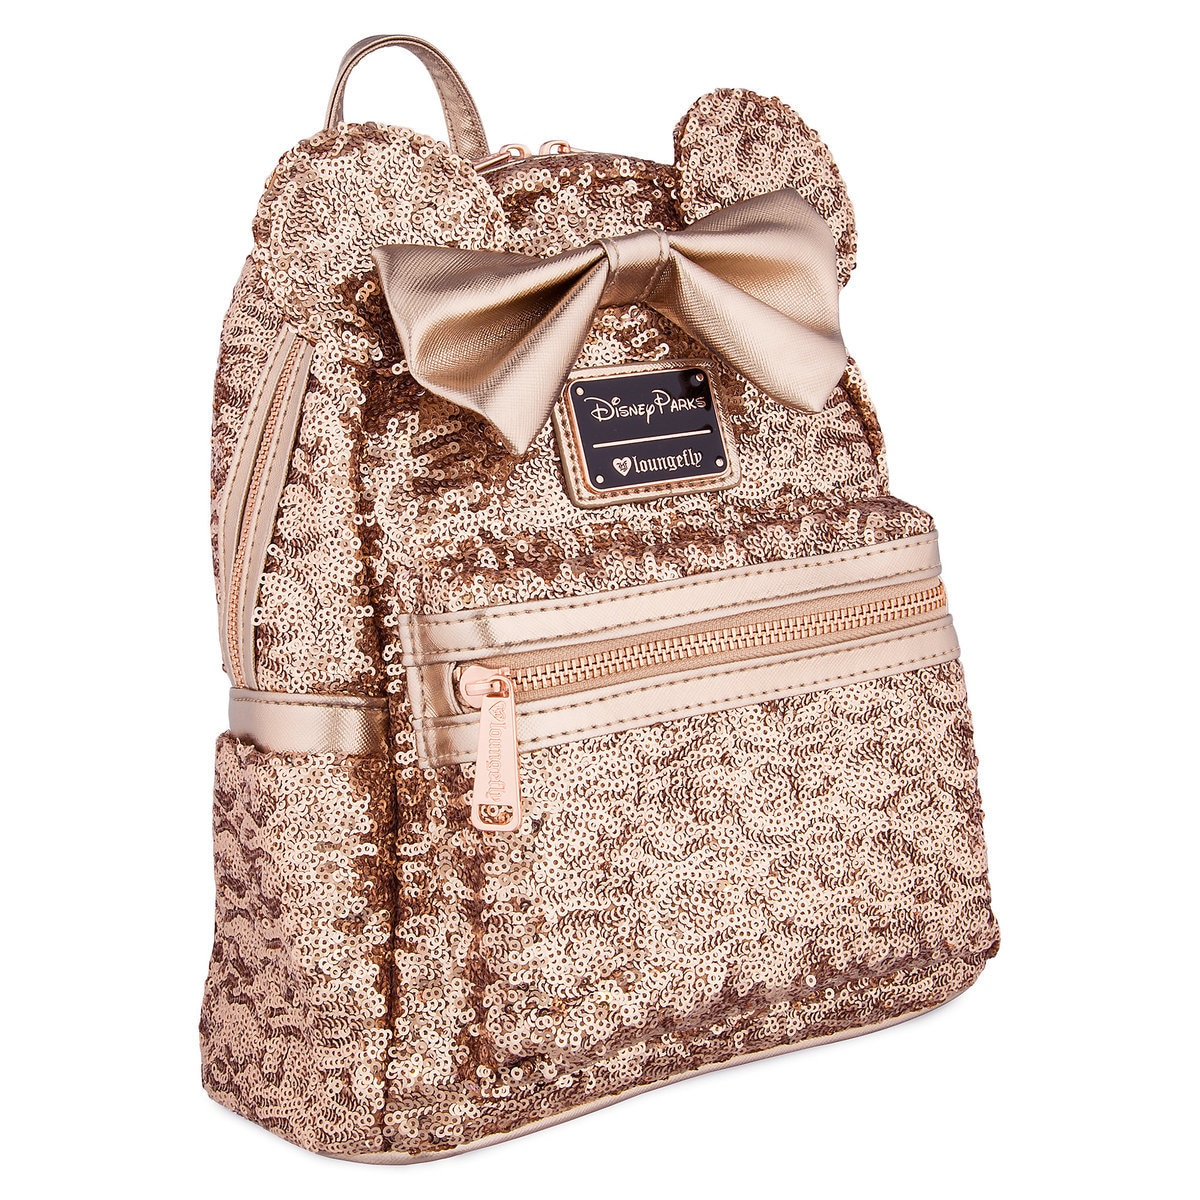 7718b6b33c61 Product Image of Minnie Mouse Sequined Mini Backpack by Loungefly - Rose  Gold # 1